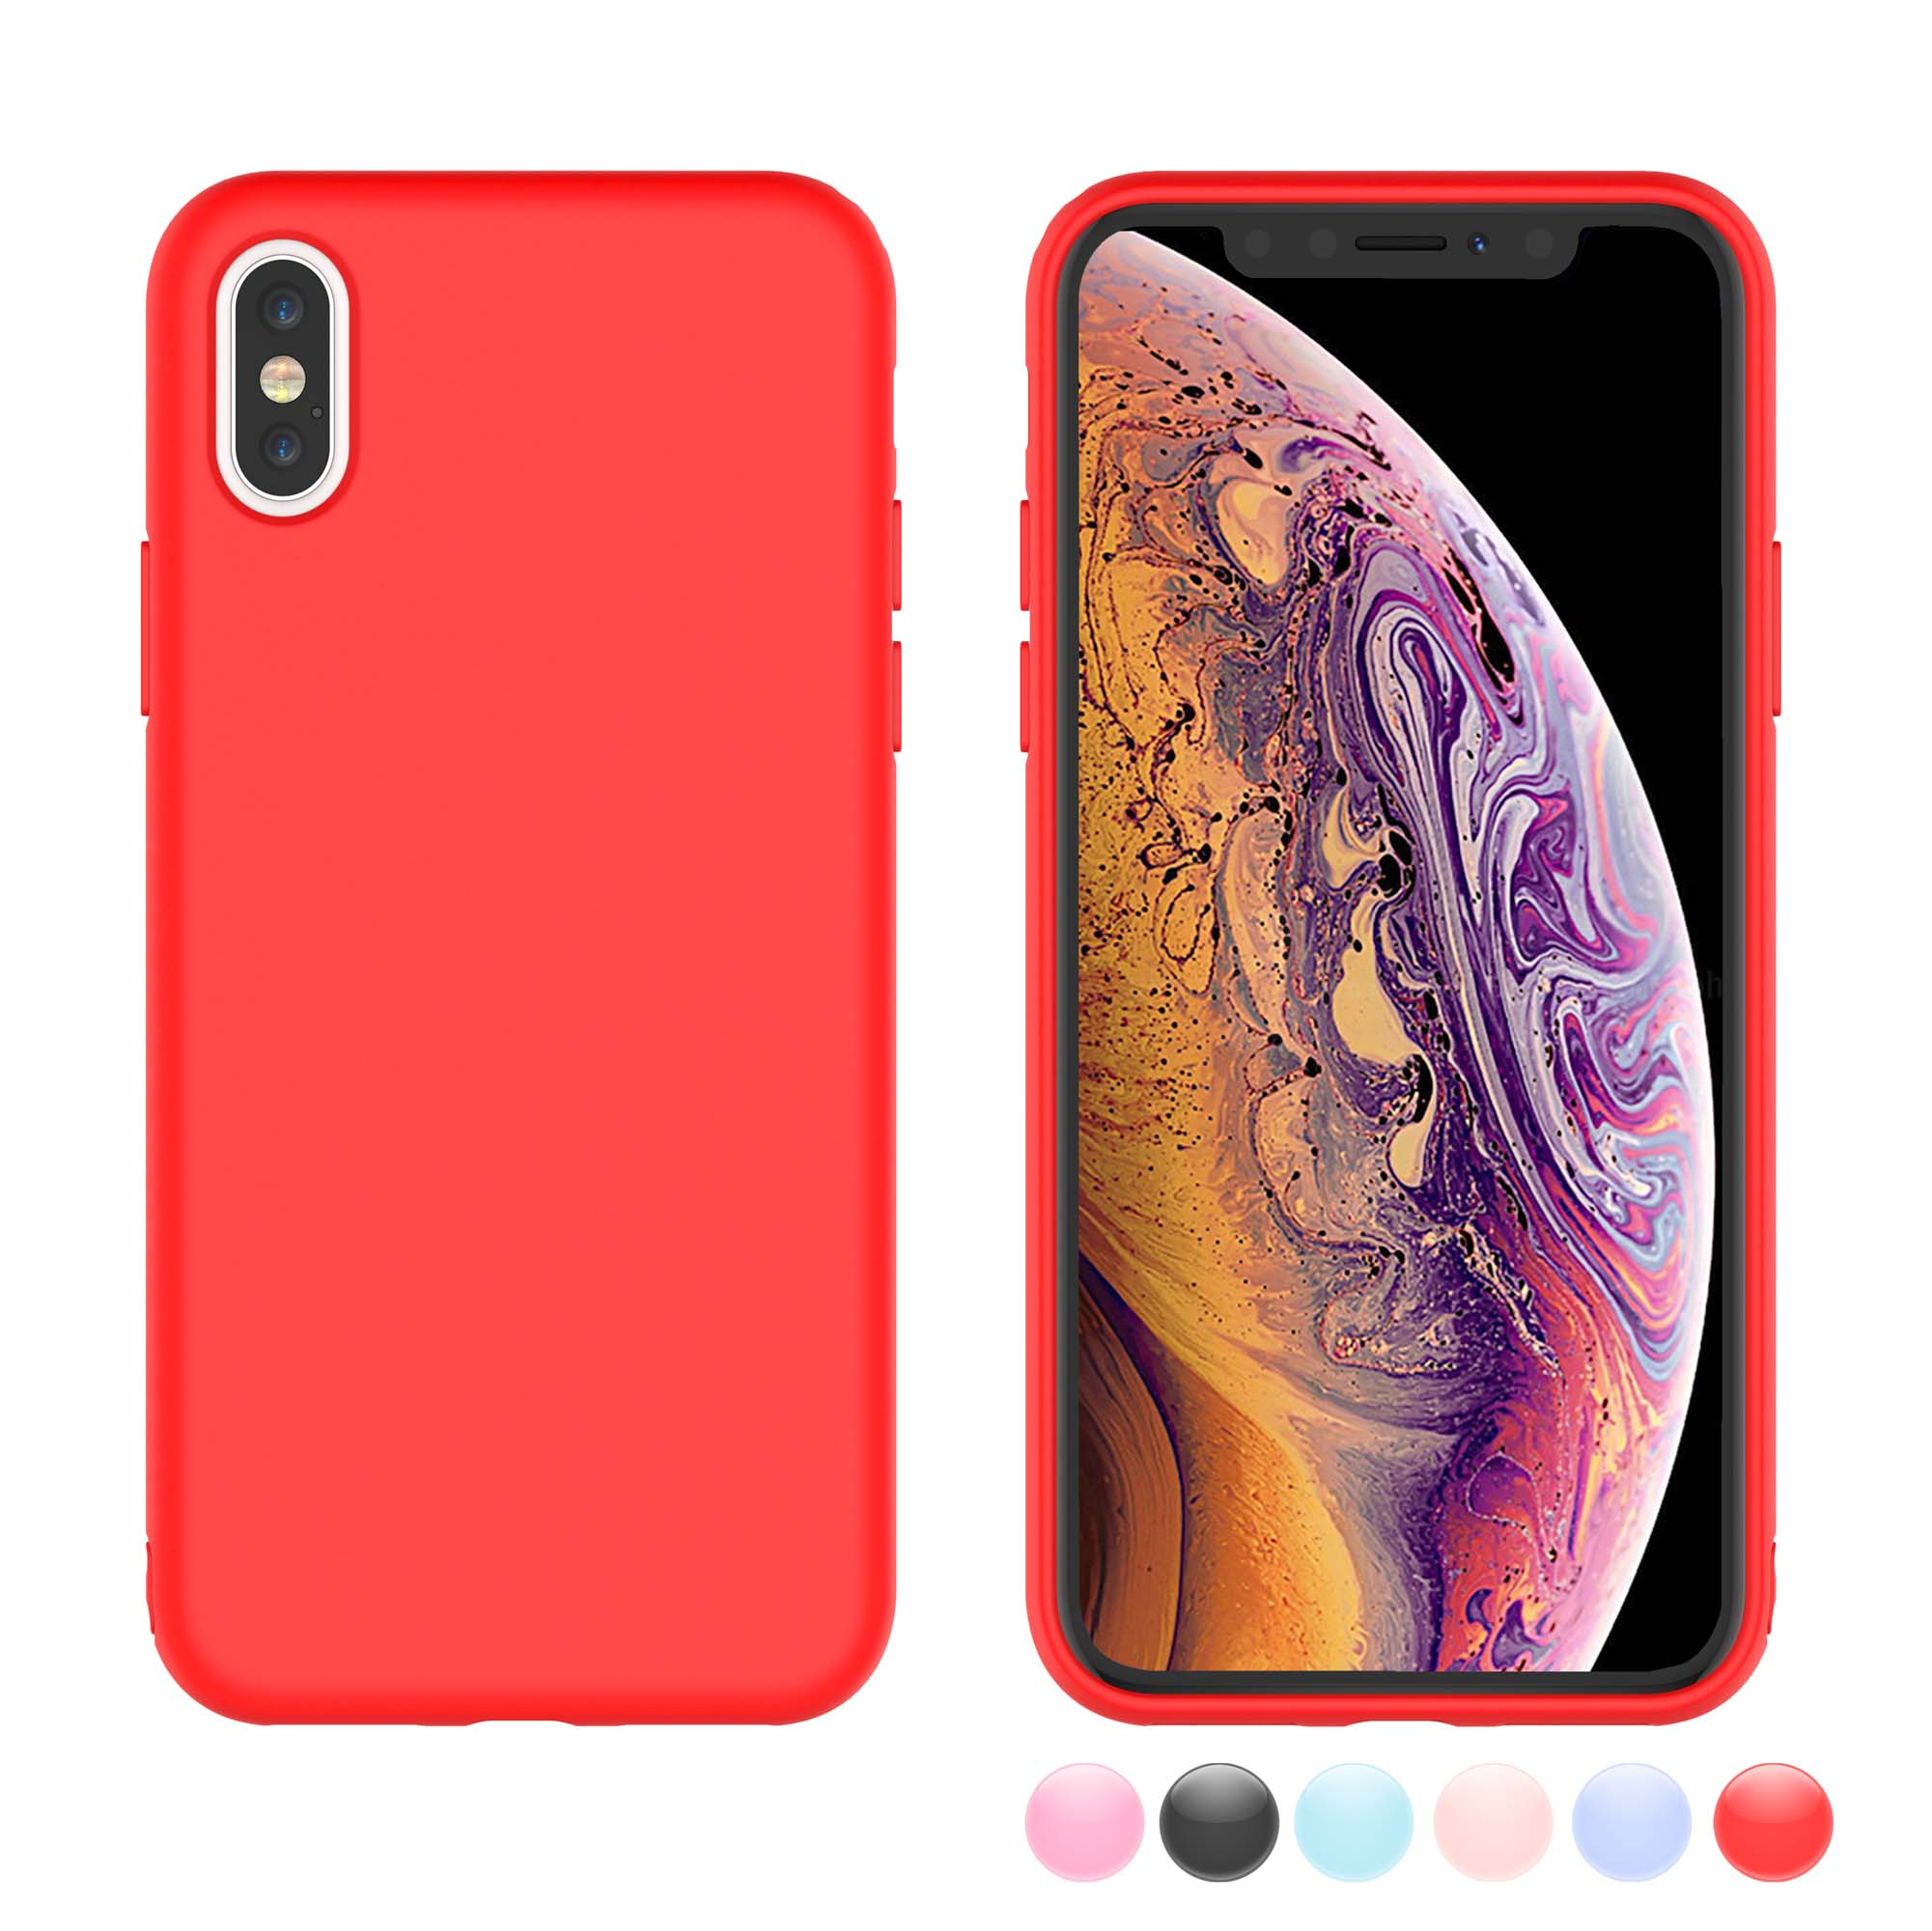 info for feadc b90ed Njjex Case Cover for Apple iPhone XR / iPhone XS Max / iPhone XS / iPhone X  / iPhone 10 / iPhone X Edition, Njjex Matte Charming Colorful Slim Soft ...